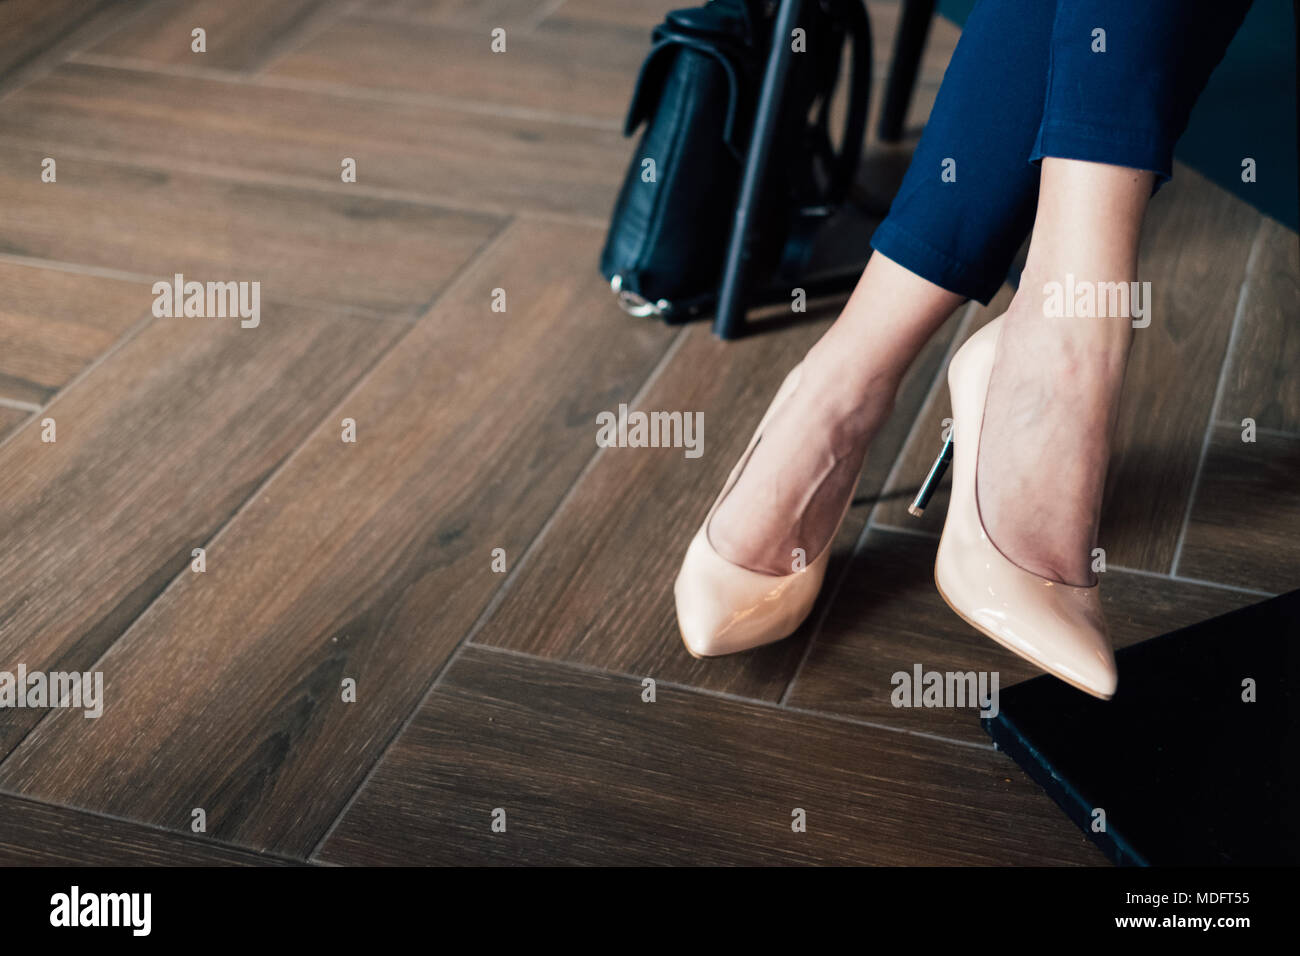 Close-up of a businesswoman's legs in a trouser suit and stiletto heals - Stock Image